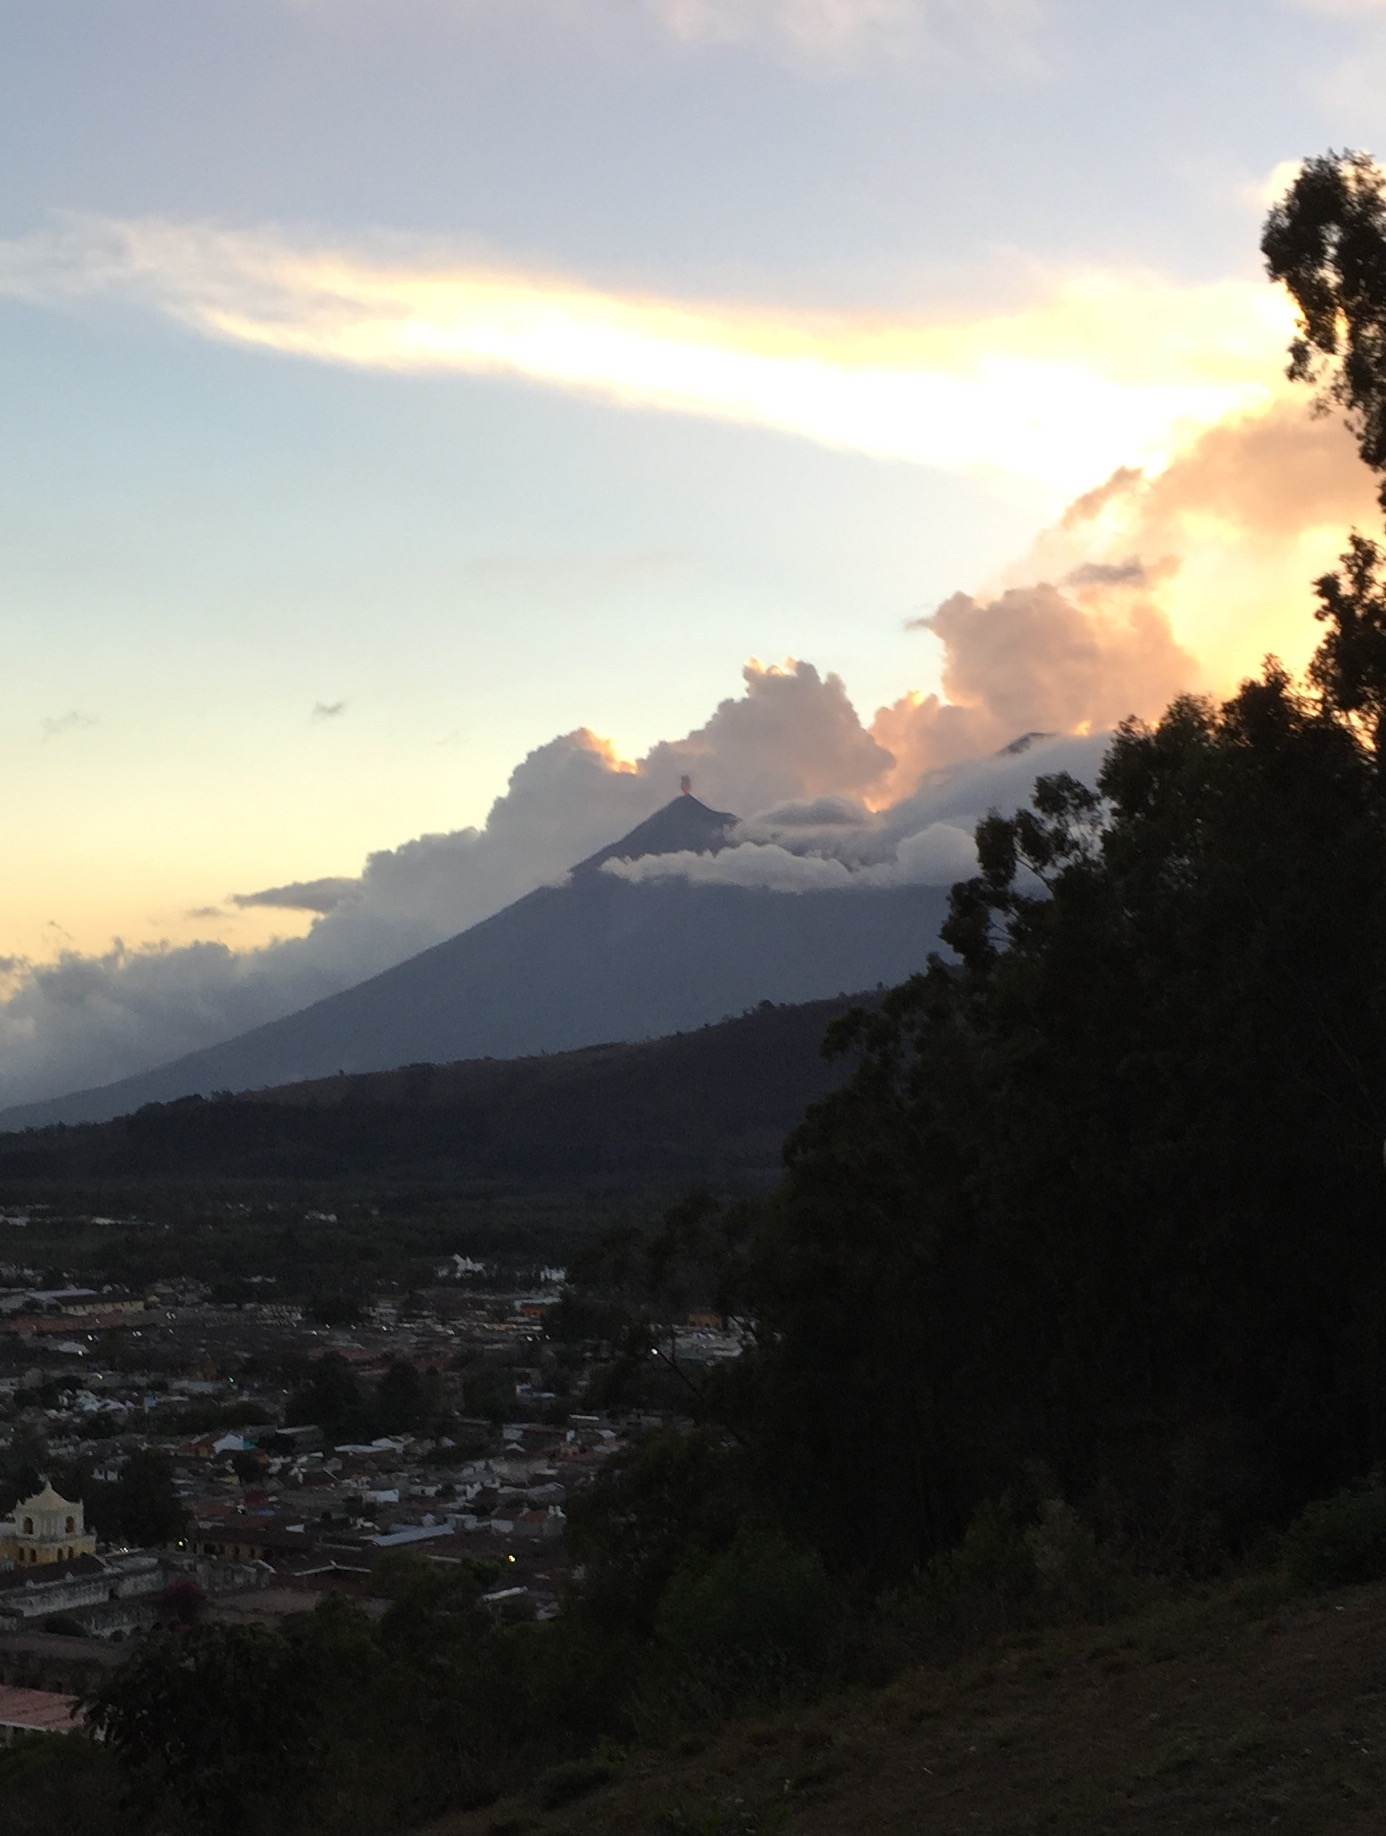 View from the Cerro de la Cruz above Antigua, as Volcán de Aguain erupts just after sunset.